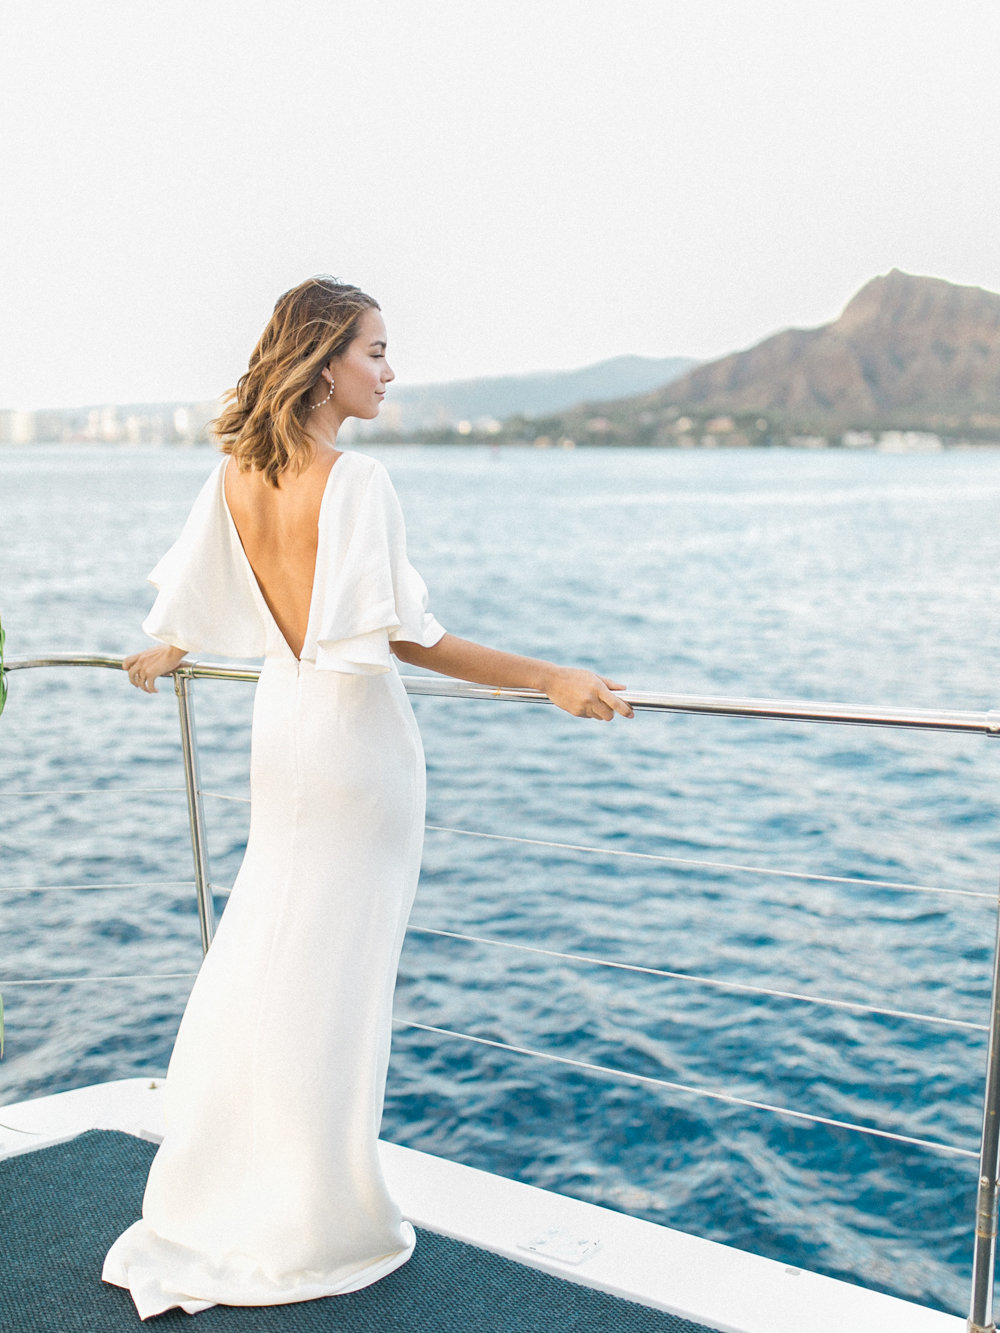 Galleries - San Diego Wedding Photography   Mandy Ford Photography